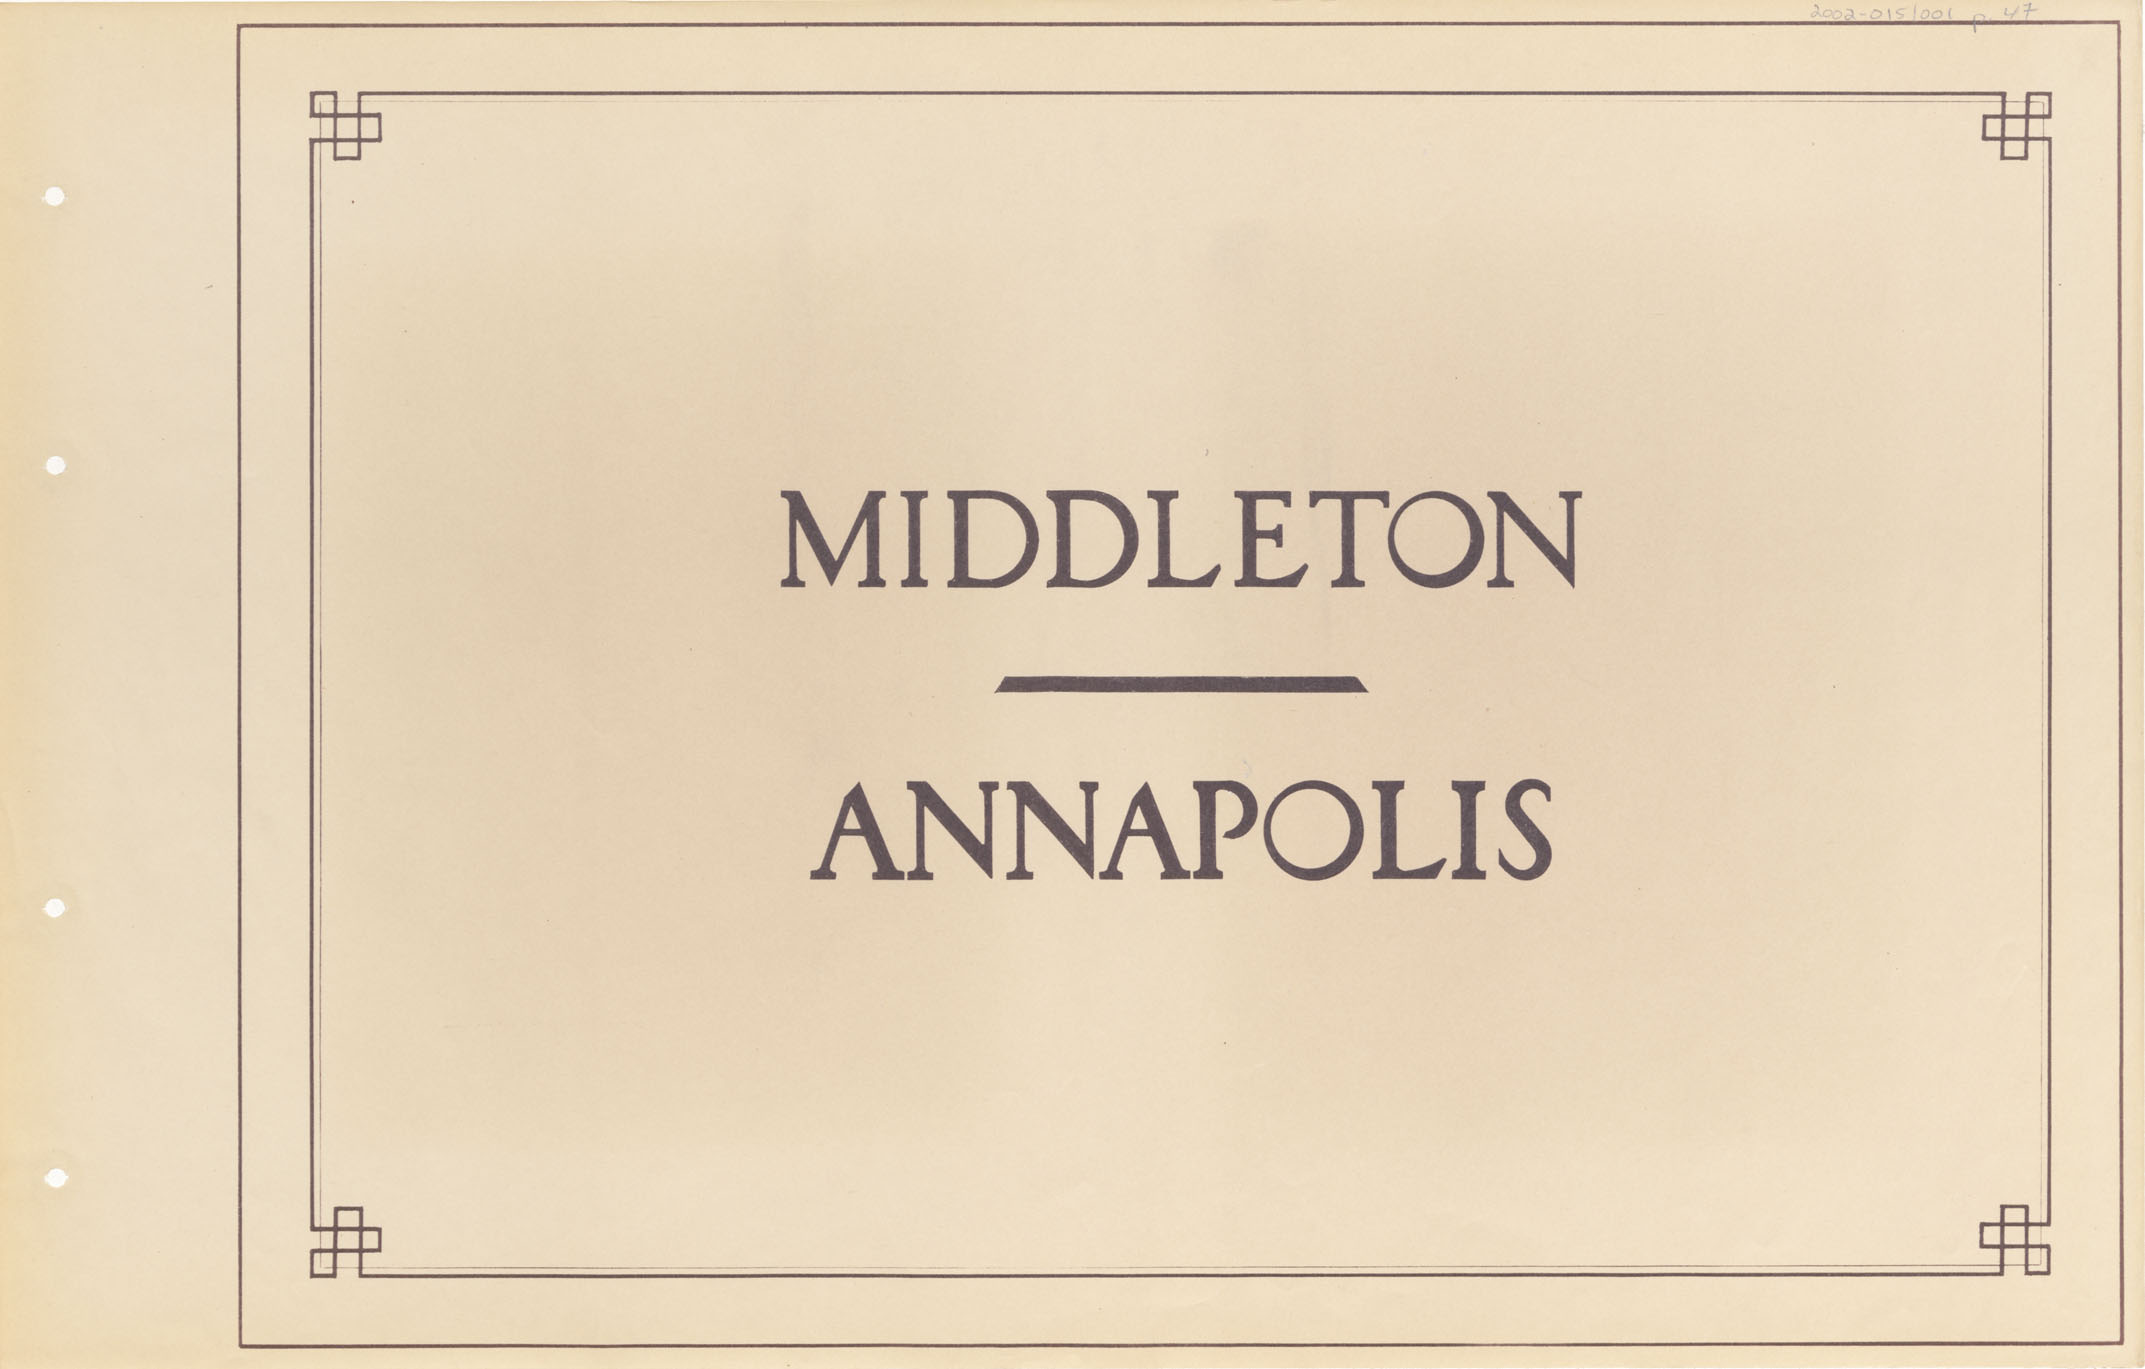 Middleton - Annapolis